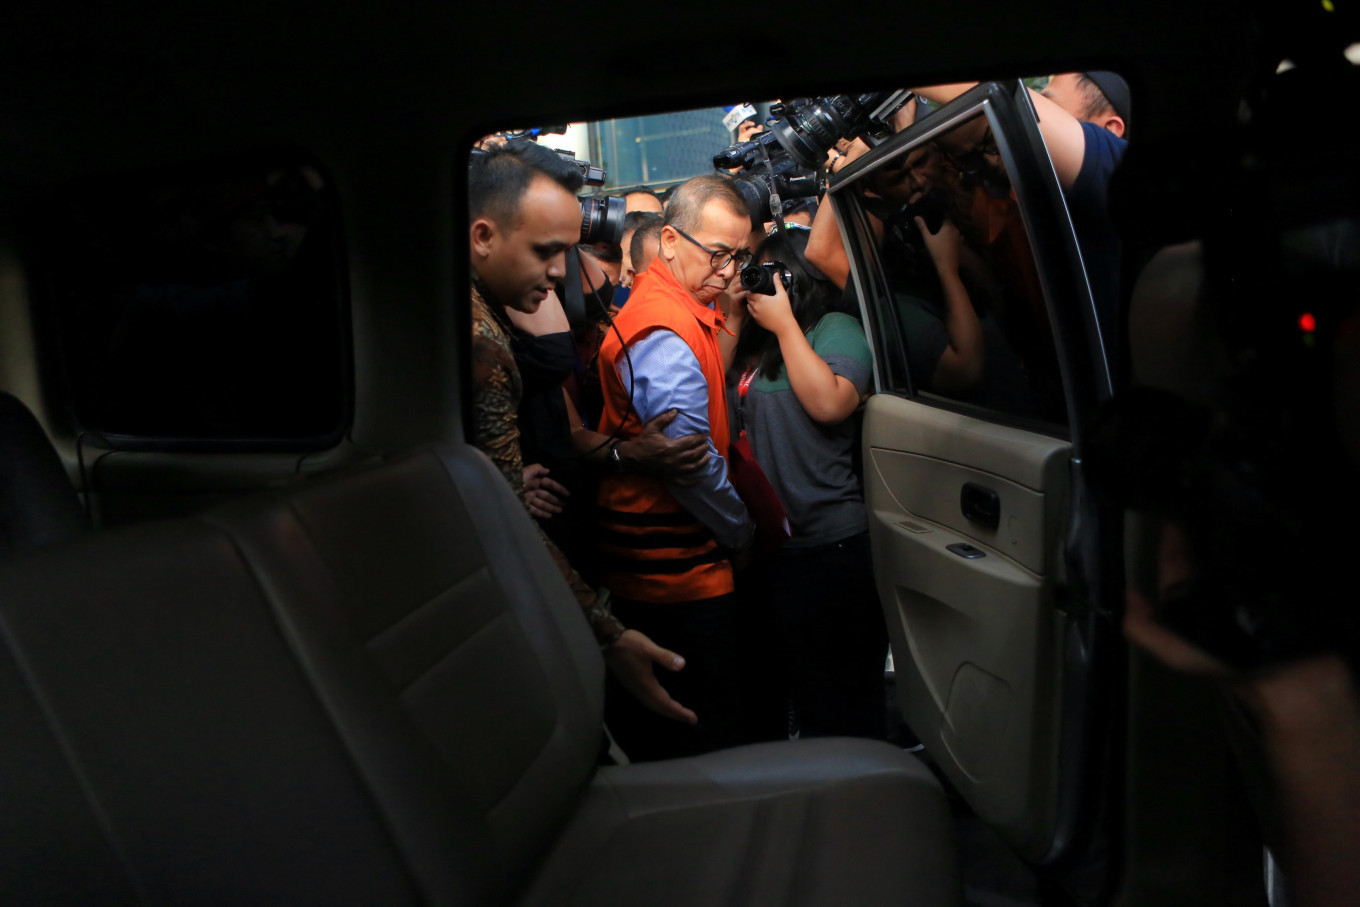 After 3 years, KPK concludes probe into Rolls-Royce bribery case implicating ex-Garuda boss